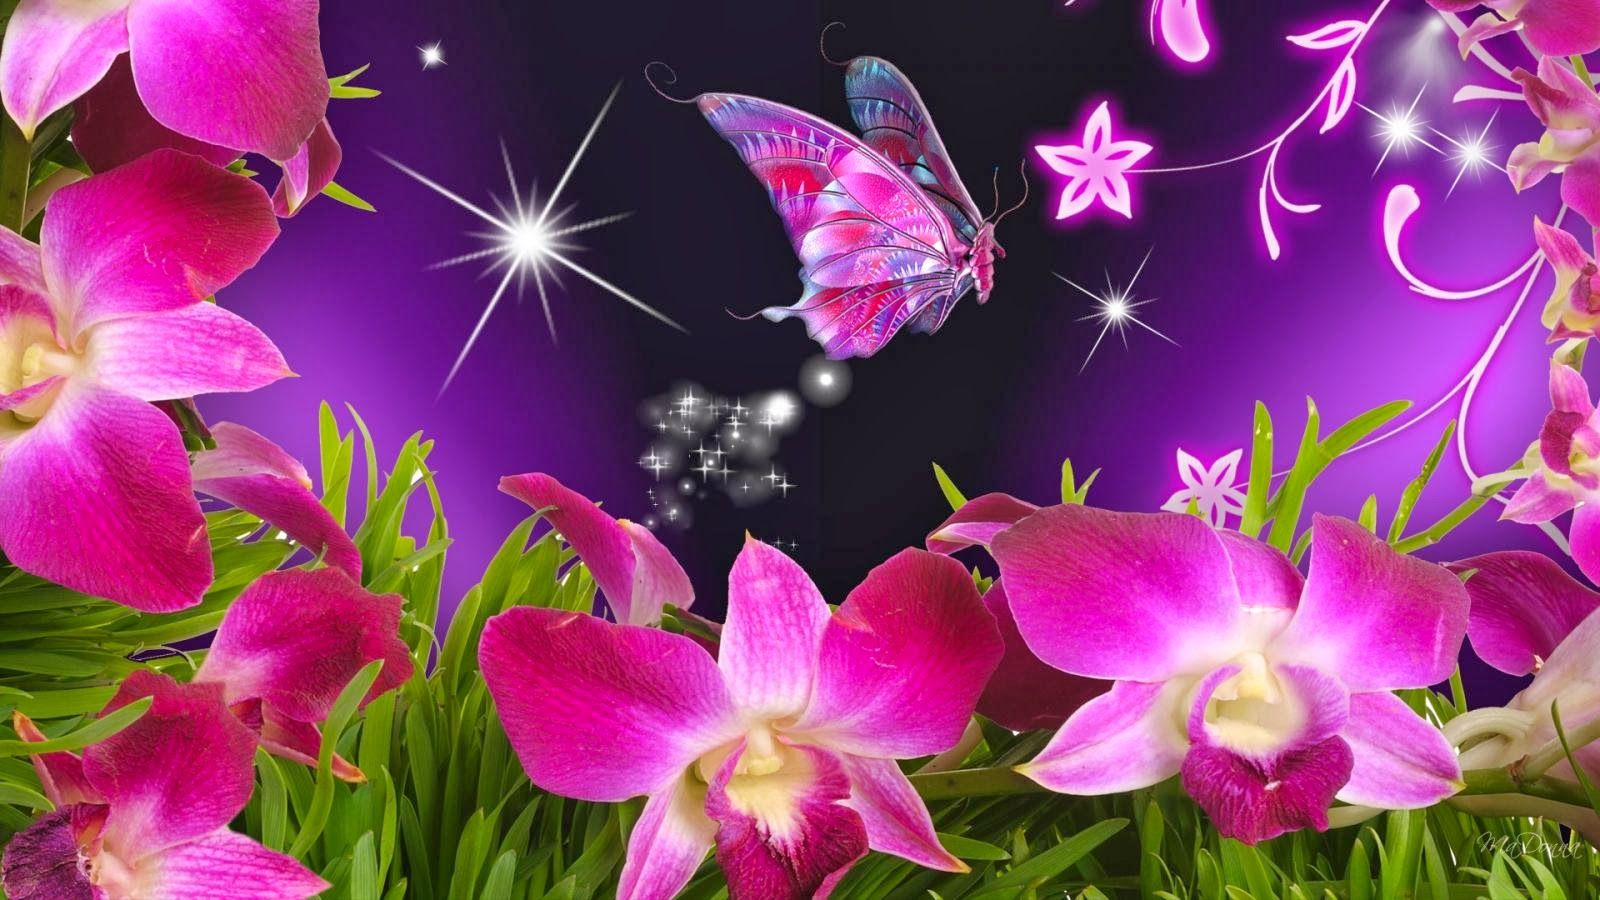 Wallpaper Flowers And Butterflies Beautiful Flowers And Butterflies Wallpapers Free Download Wallpaper Nature Flowers Butterfly Wallpaper Pink Butterfly